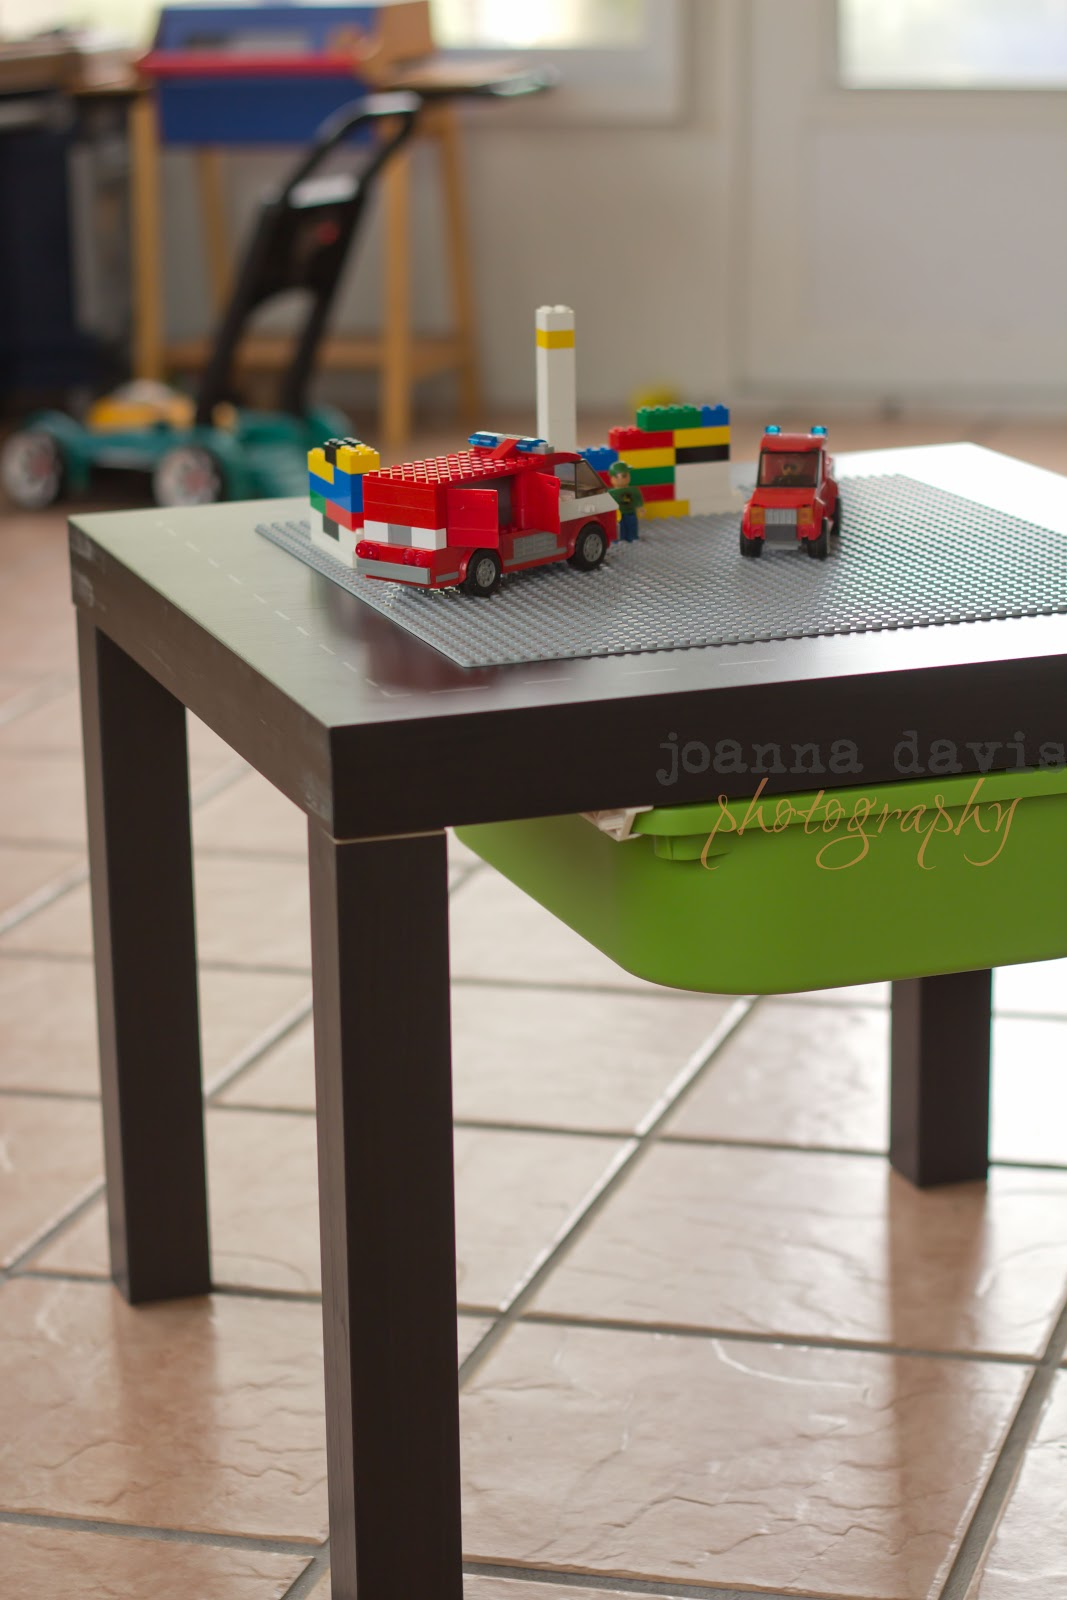 build a lego table for your classroom!